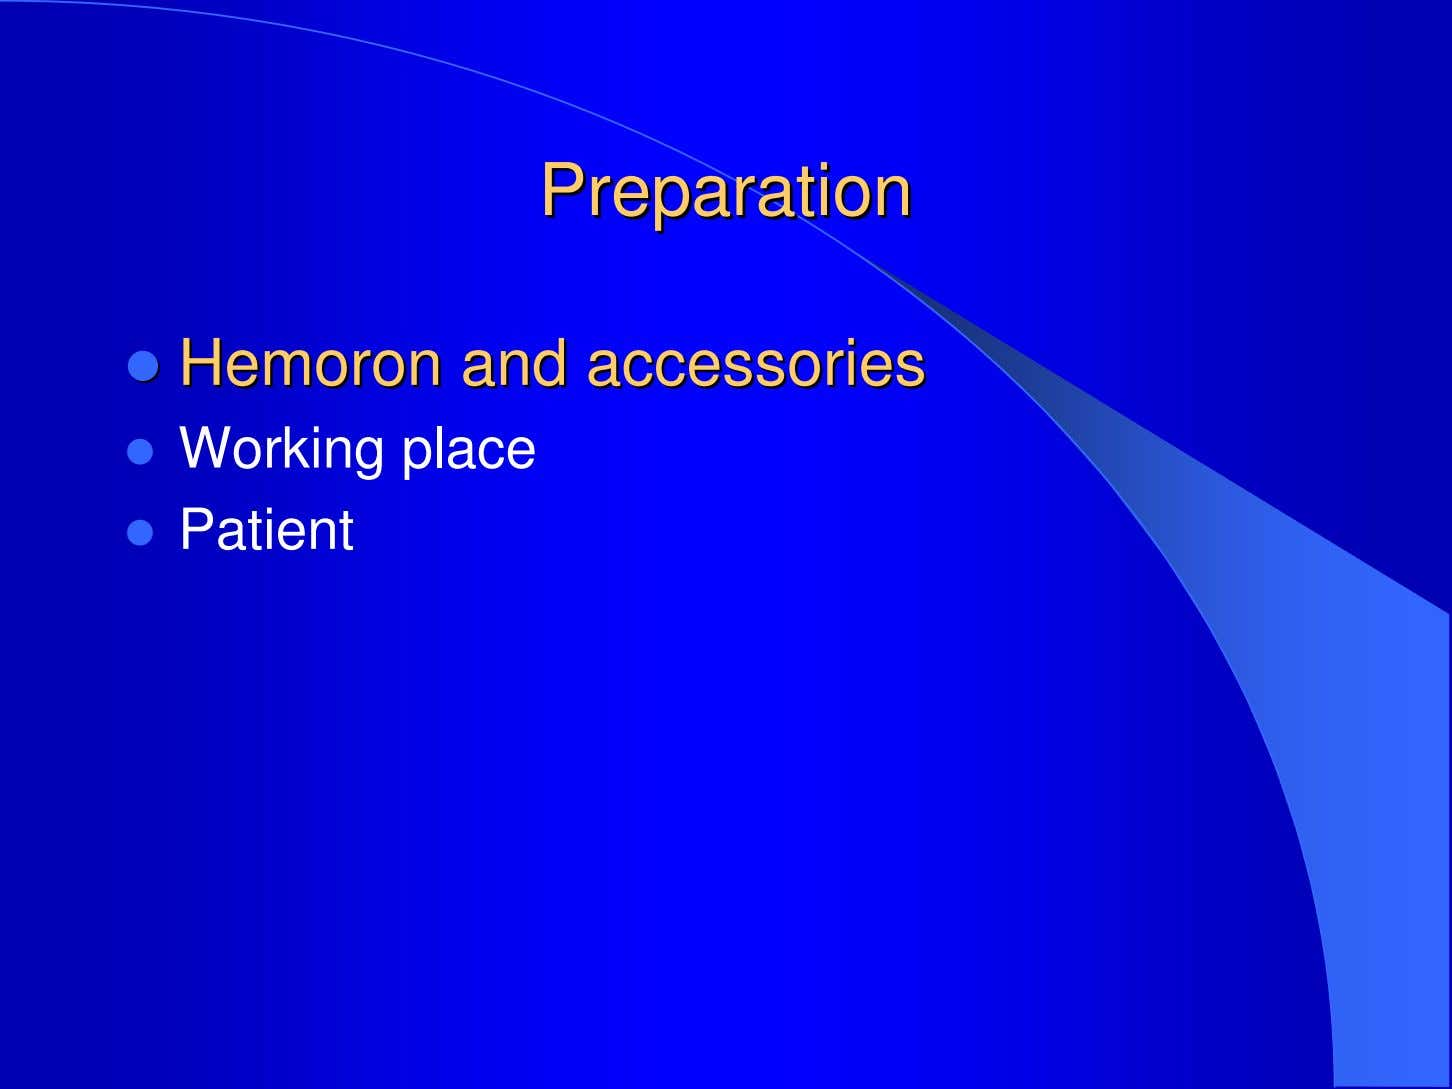 PreparationPreparation HemoronHemoron and and accessories accessories Working place Patient